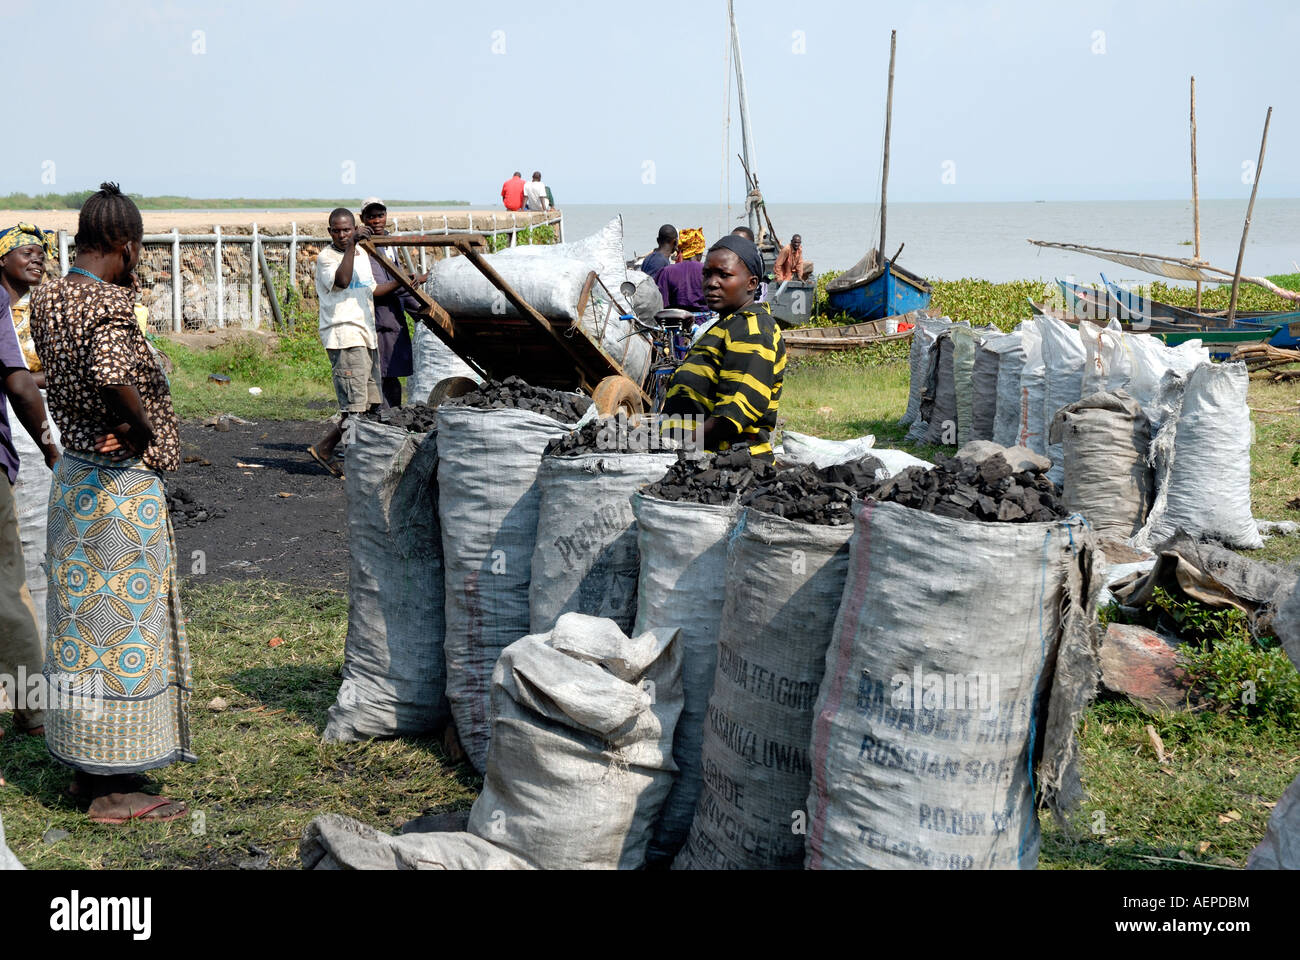 Luo women with sacks of charcoal imported from Uganda across Lake Victoria after being landed near Kisumu Kenya - Stock Image